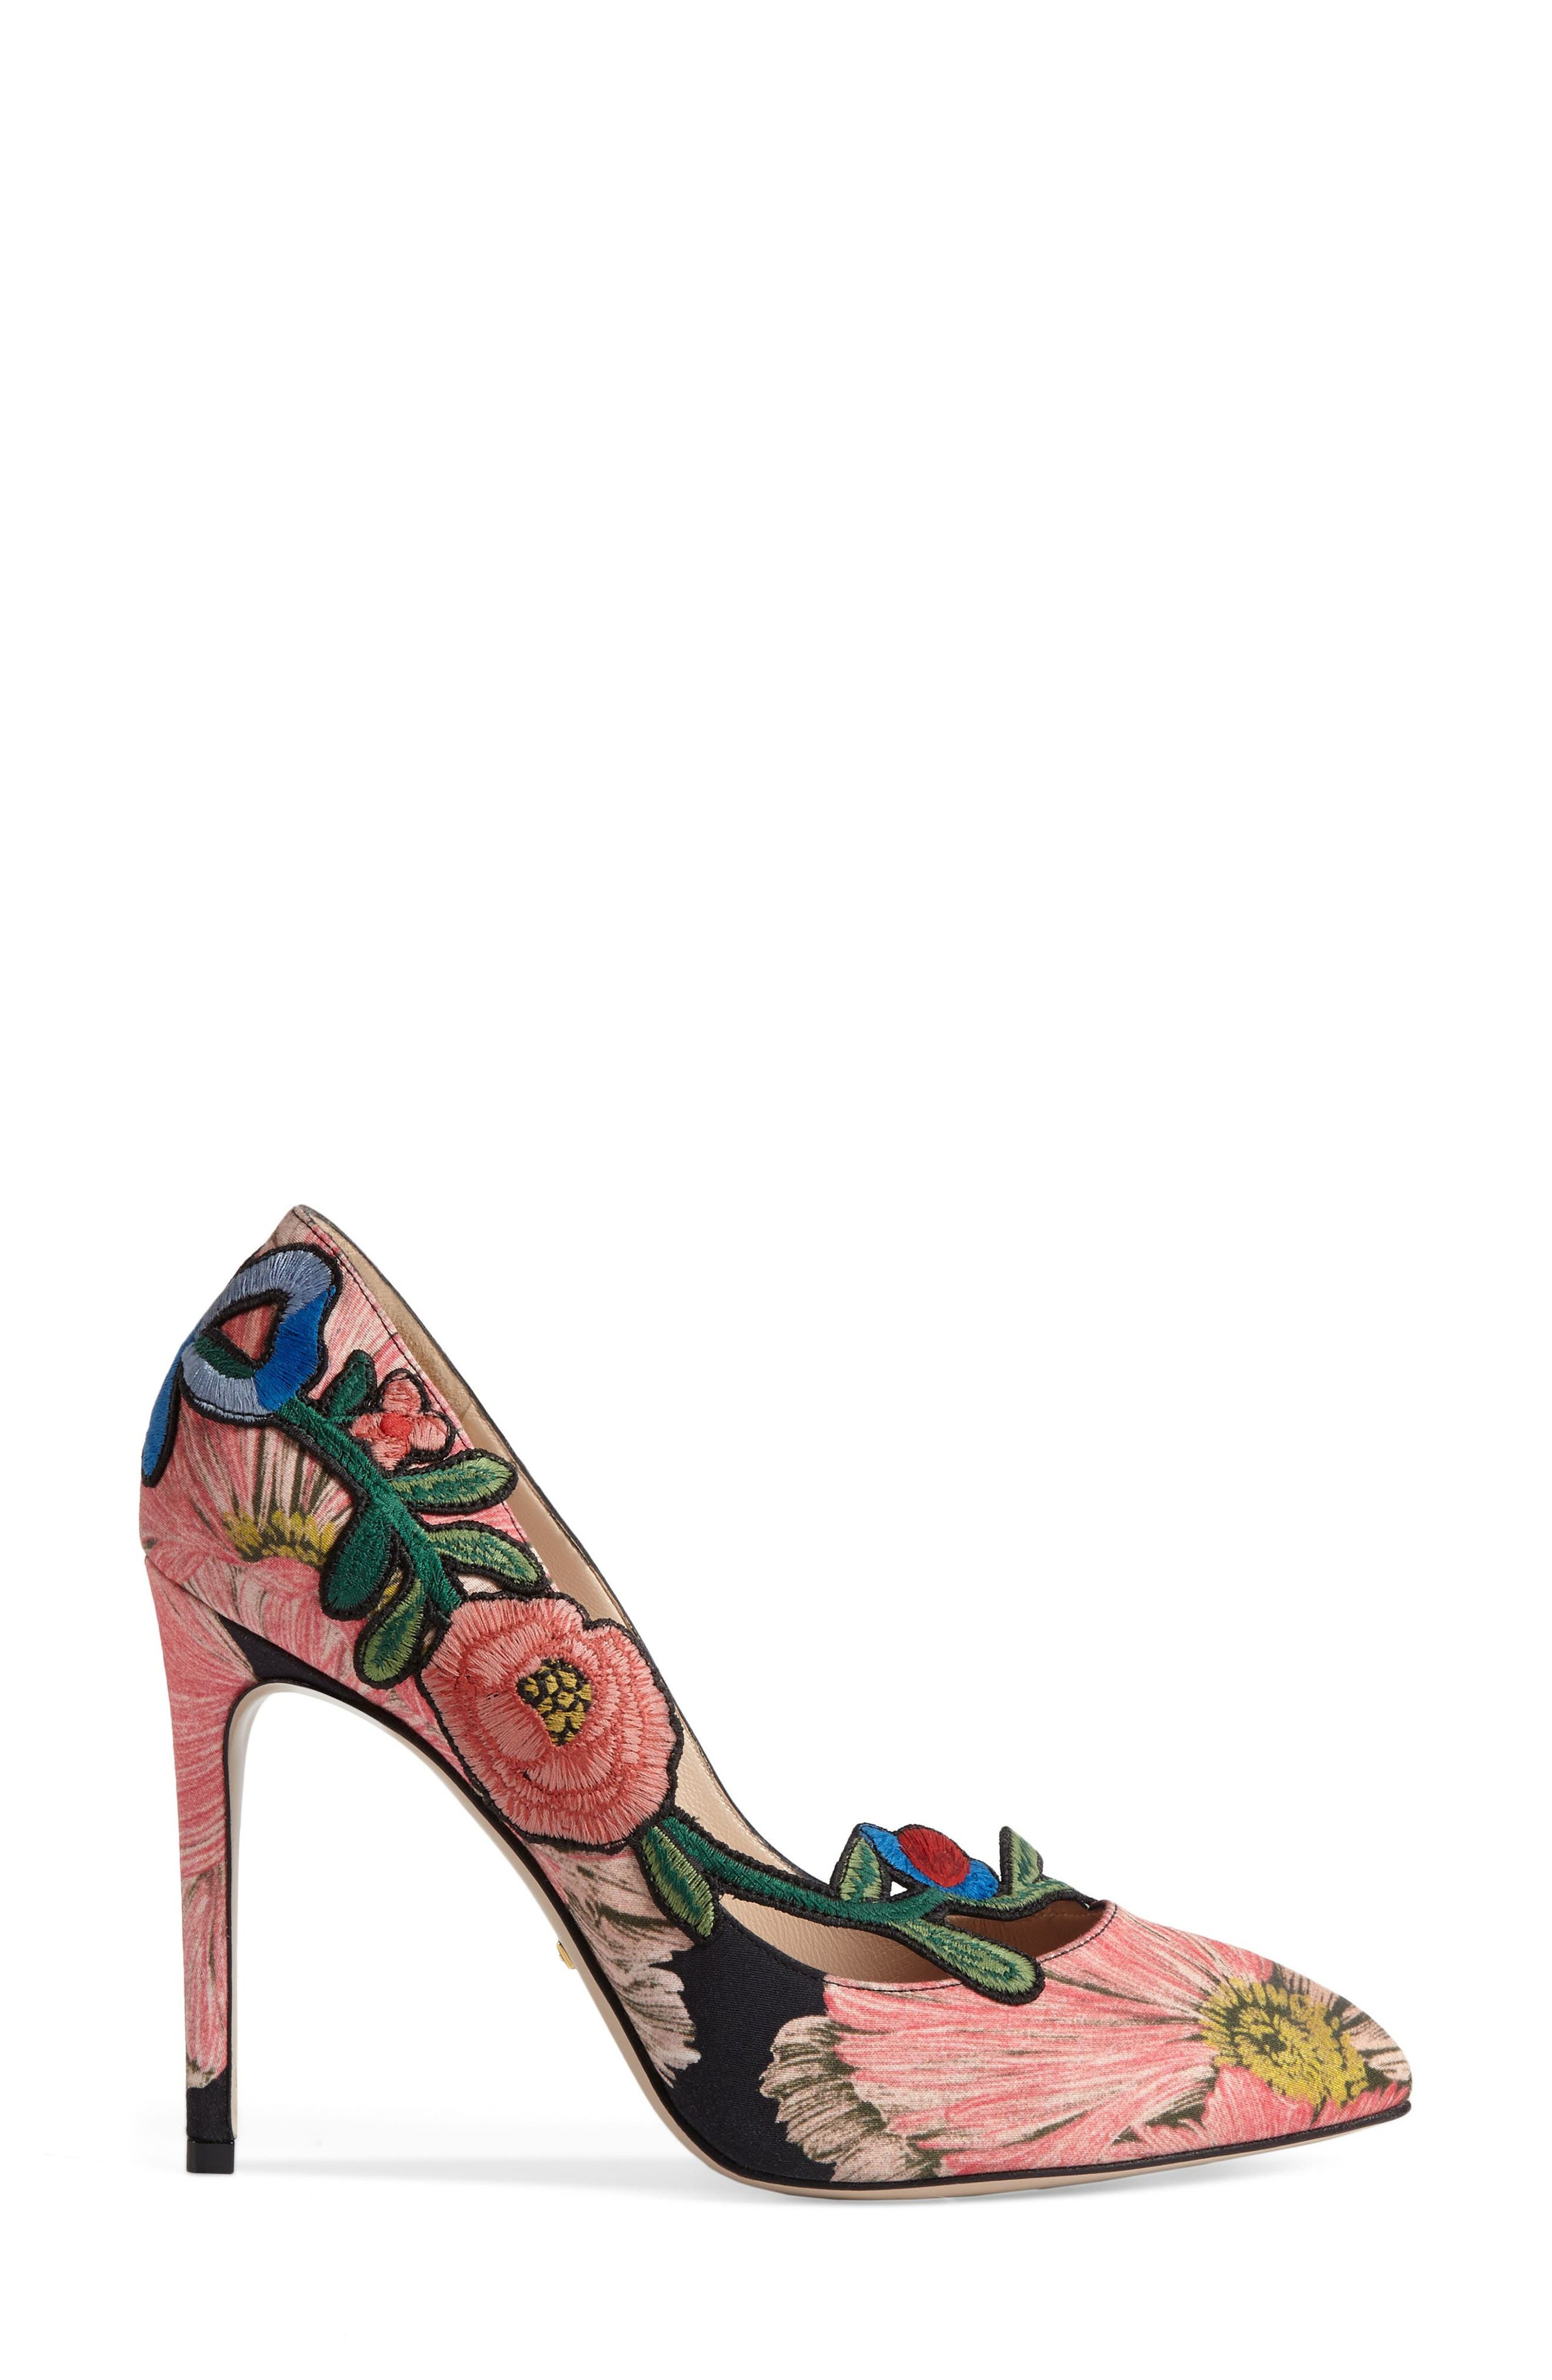 Alternate Image 3  - Gucci Ophelia Floral Pump (Women)